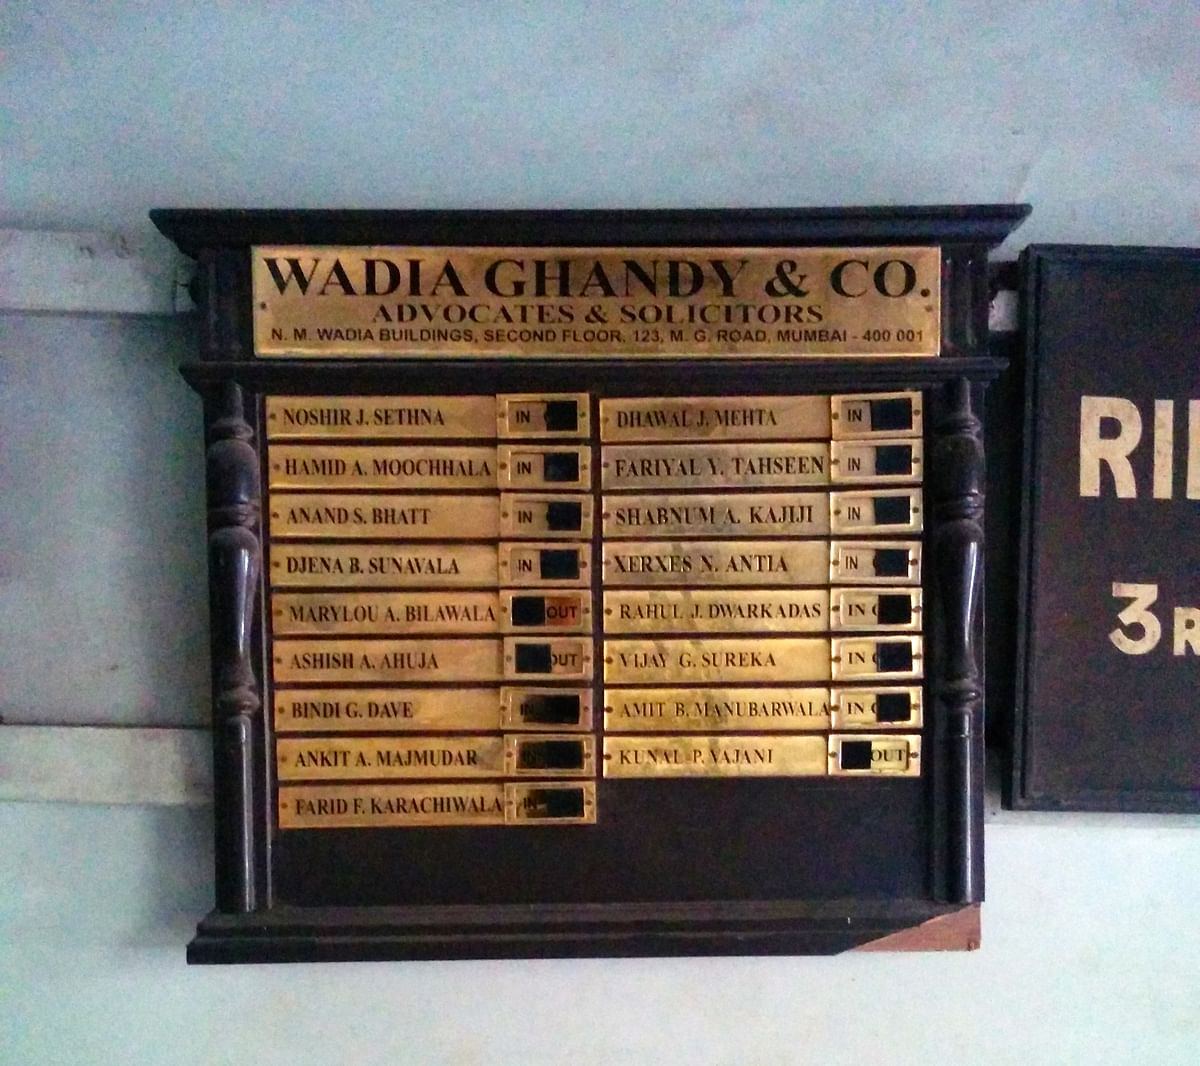 Wadia Ghandy Partner Ankit Majmudar resigns to join Platinum Partners; Wadia to close down Bangalore office